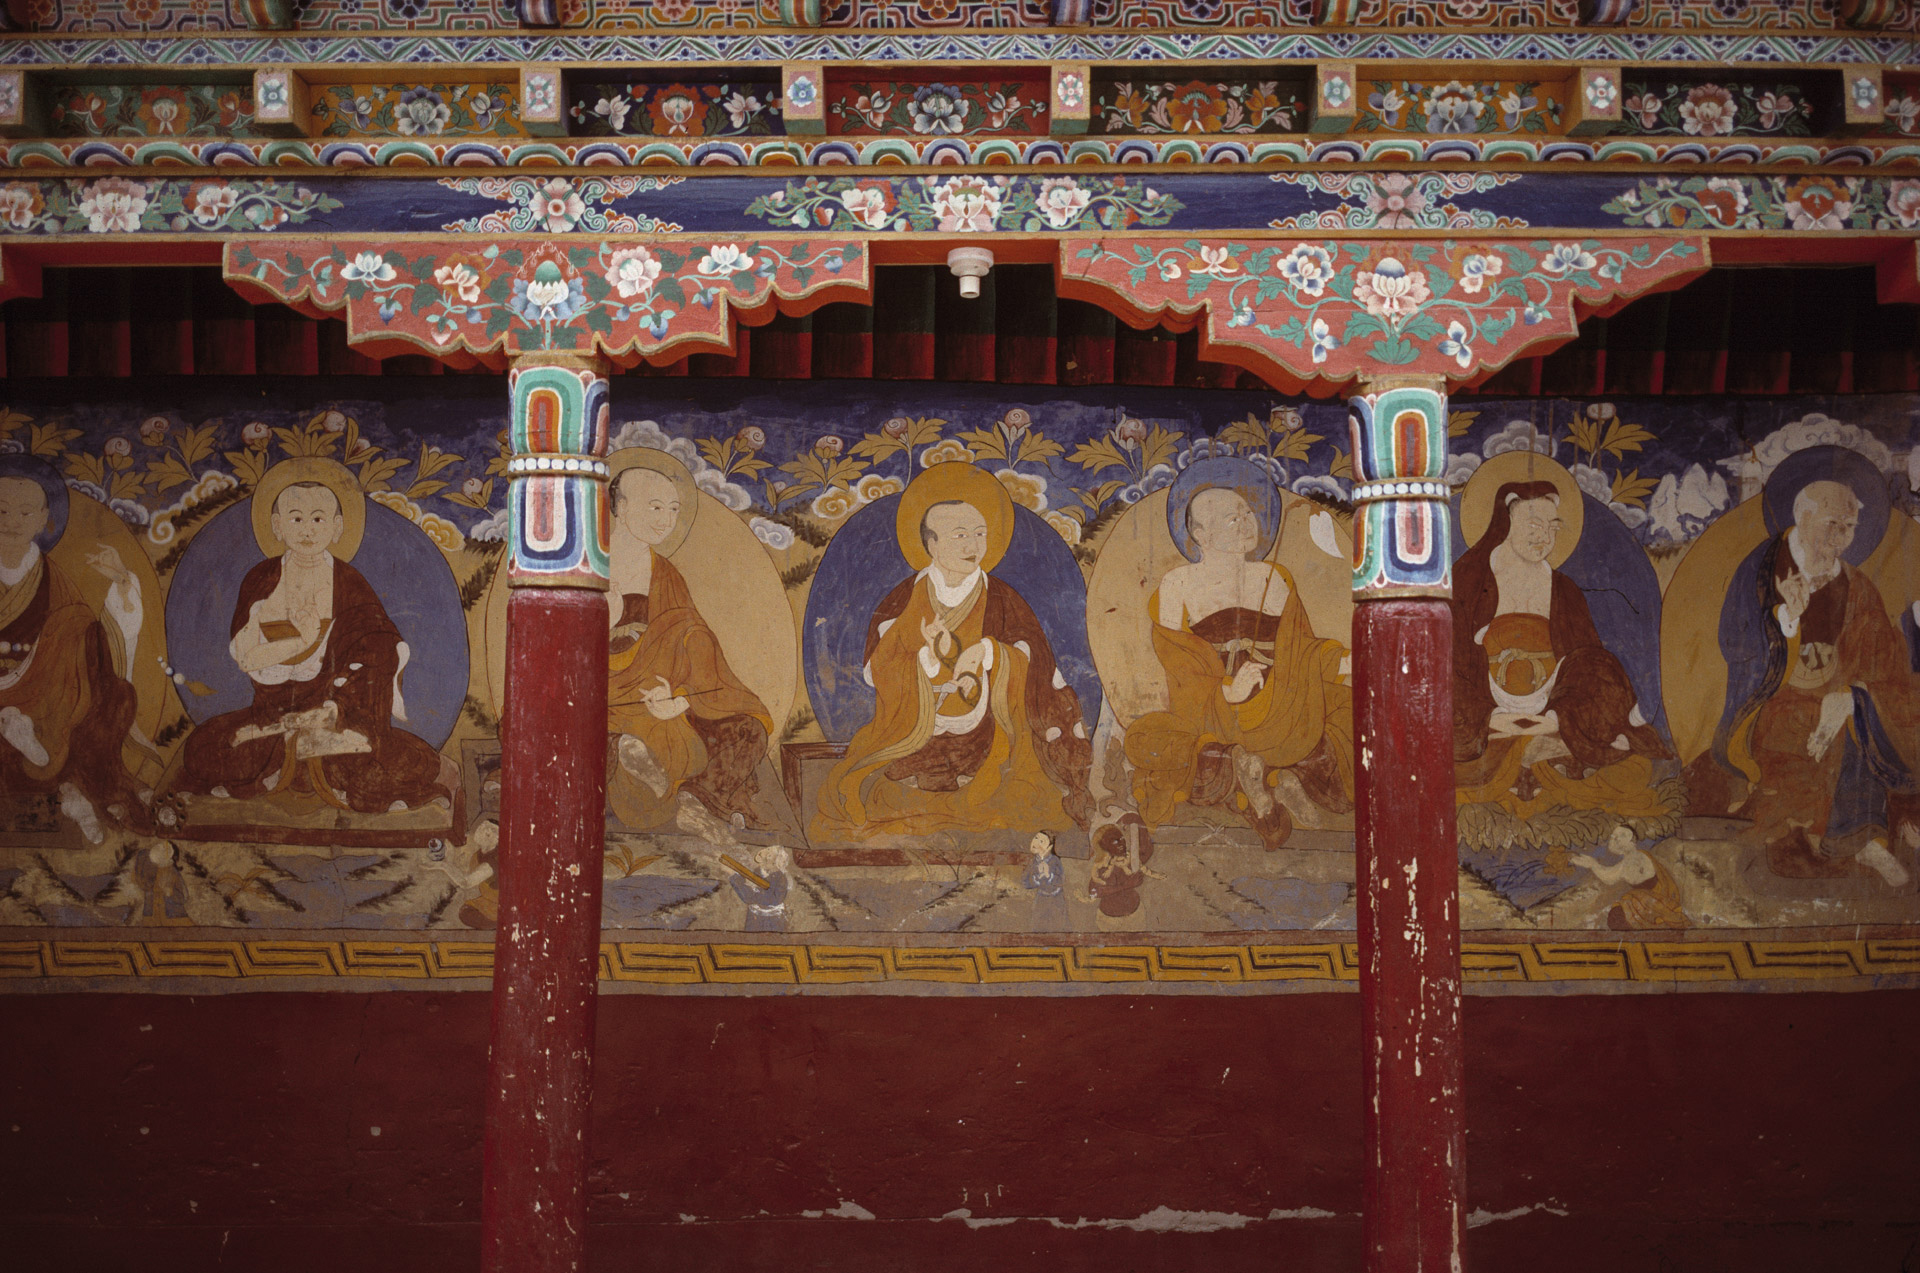 Colorful religious murals in Thiksey Monastery in Ladakh